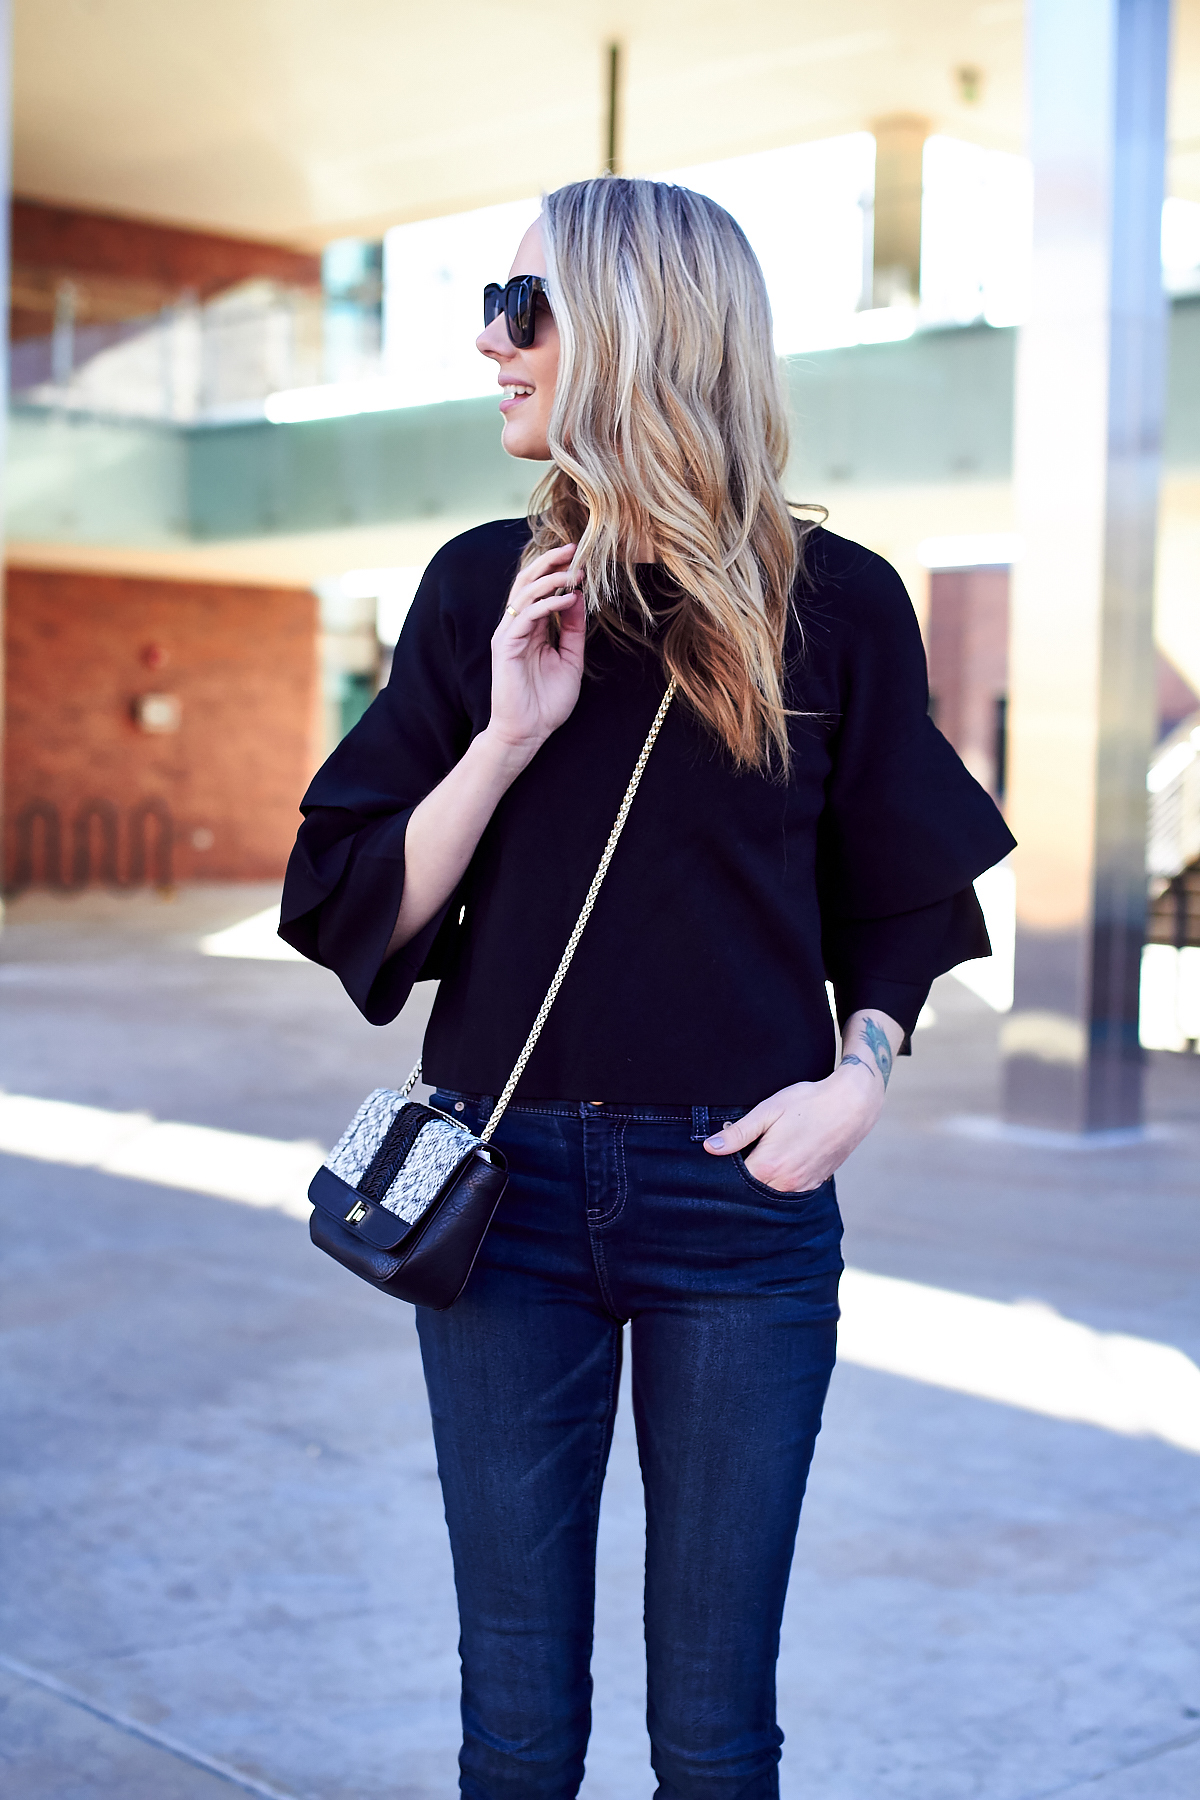 New Year's Eve Outfit, Embellished Handbag, Black Ruffle Sleeve Top, Denim Skinny Jeans